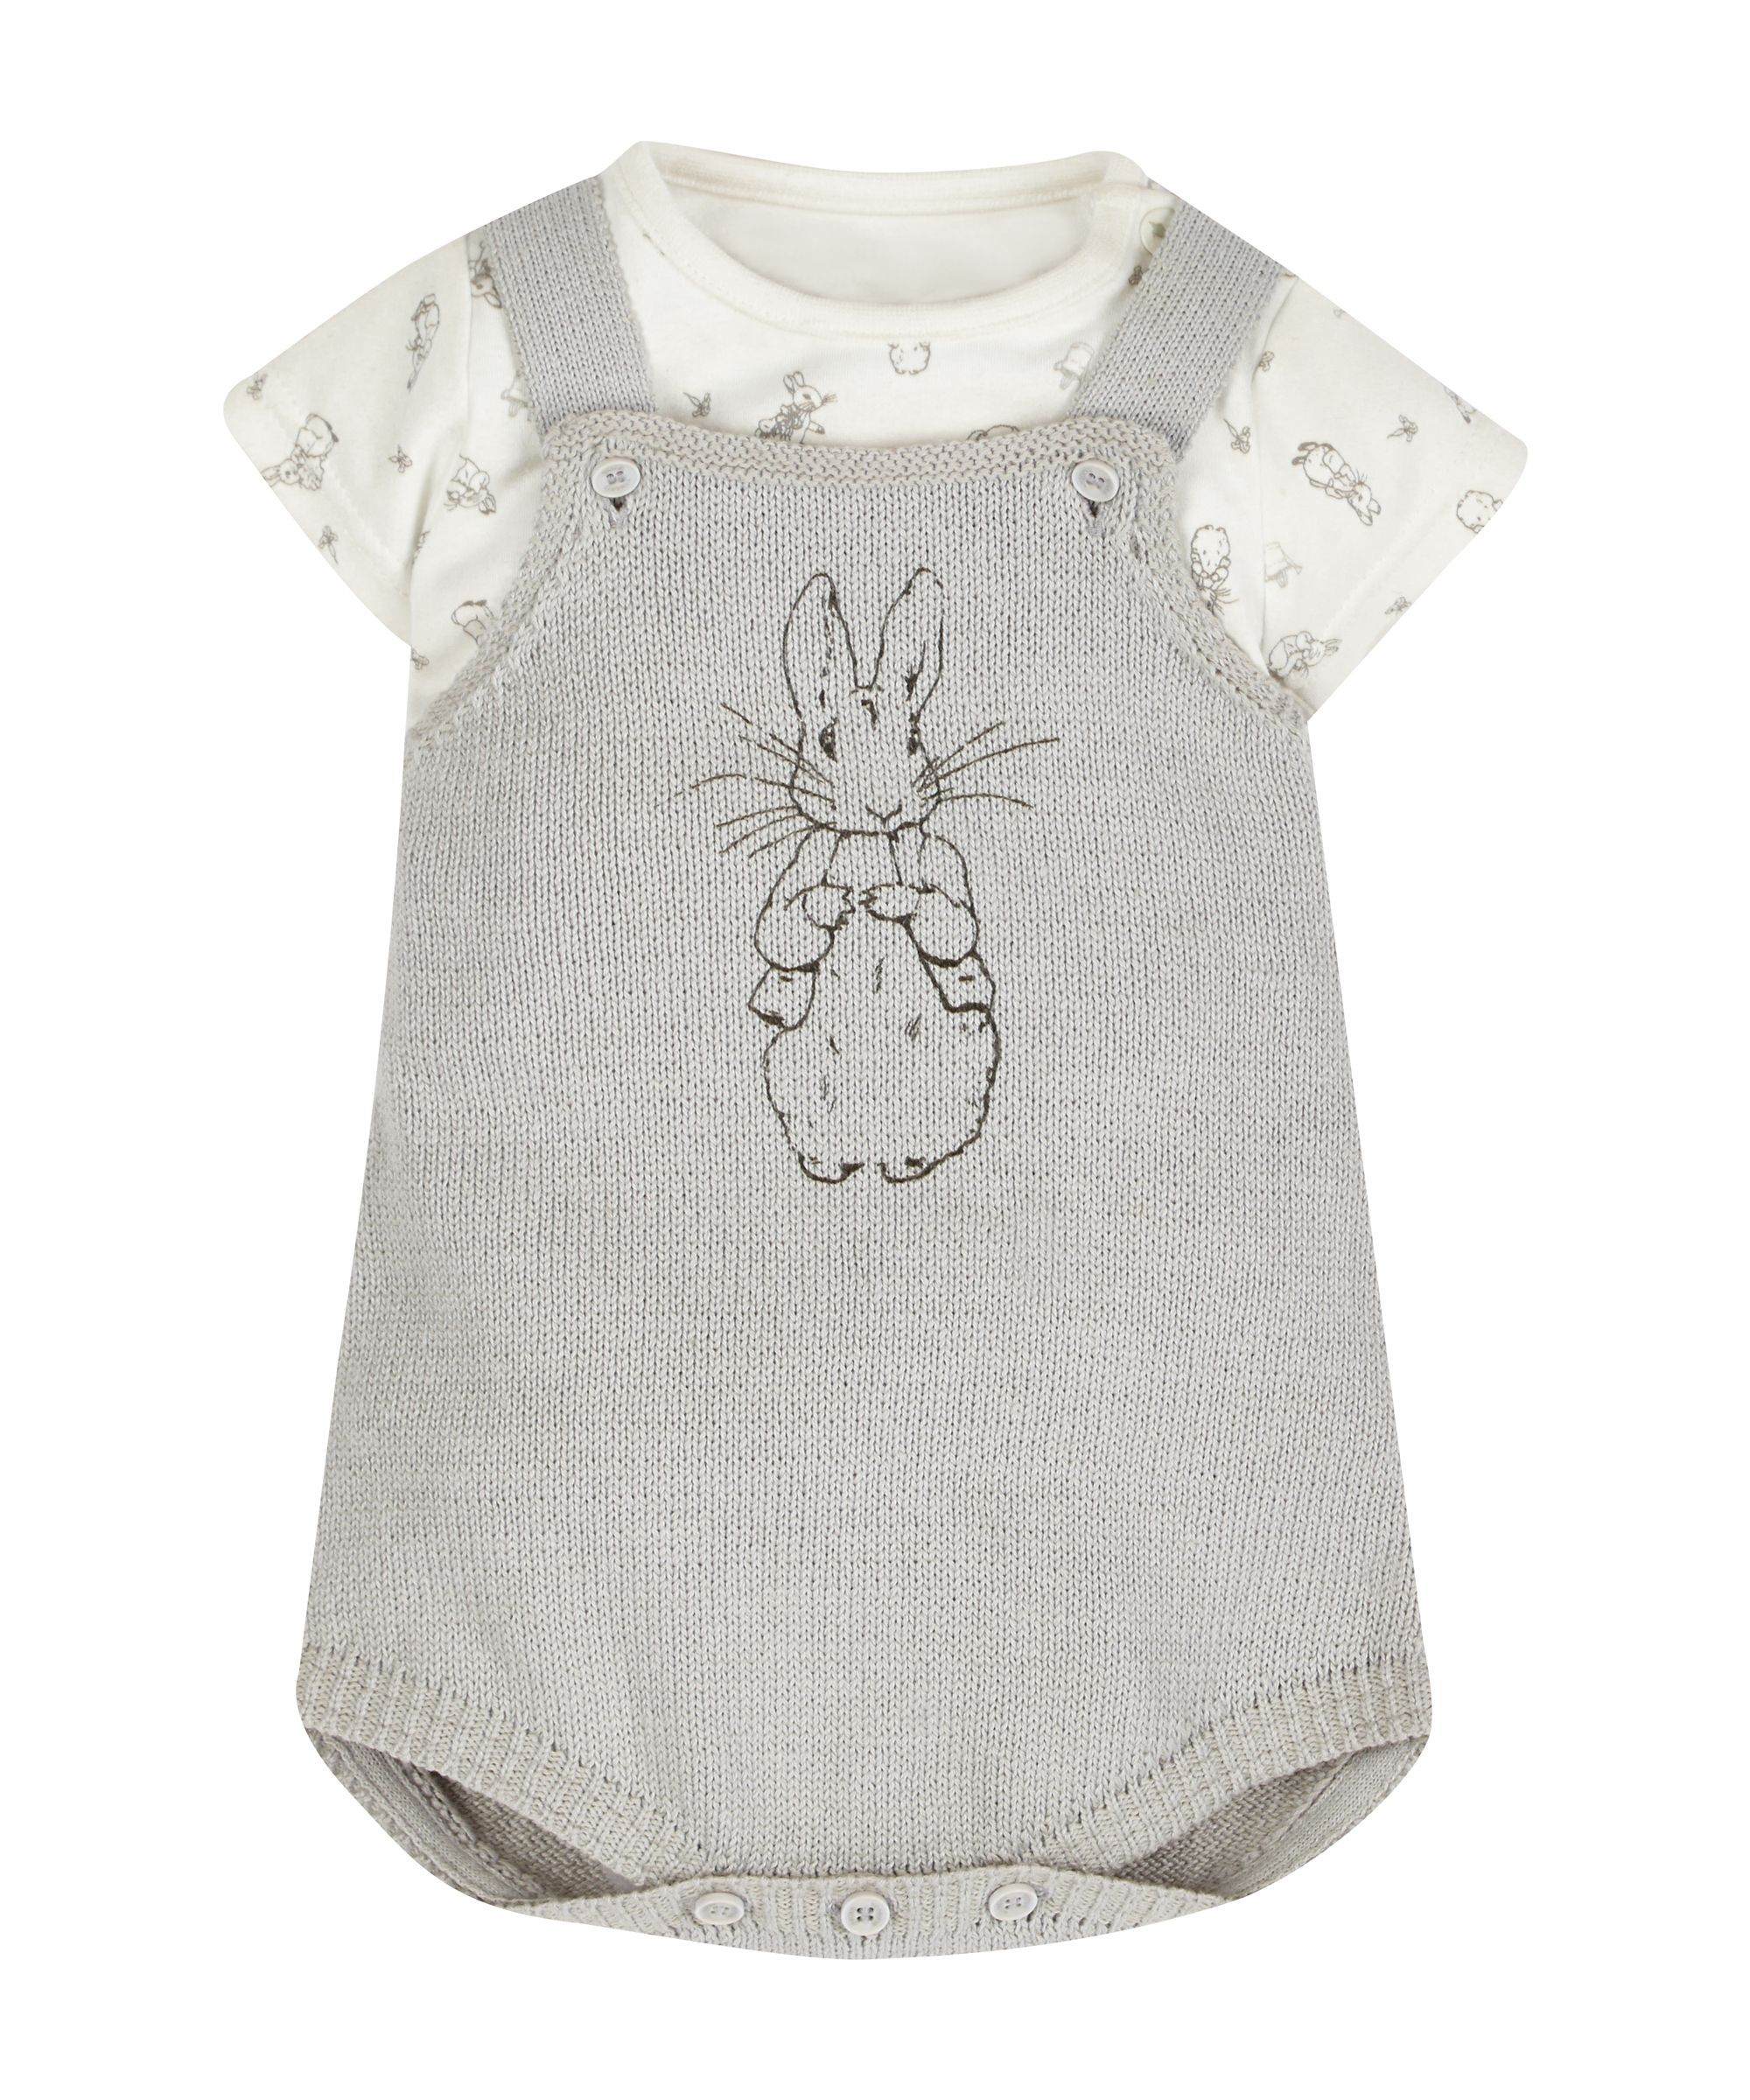 a834bb1da9eb Peter Rabbit Bodysuit and Knitted Dungarees - Mothercare 16£